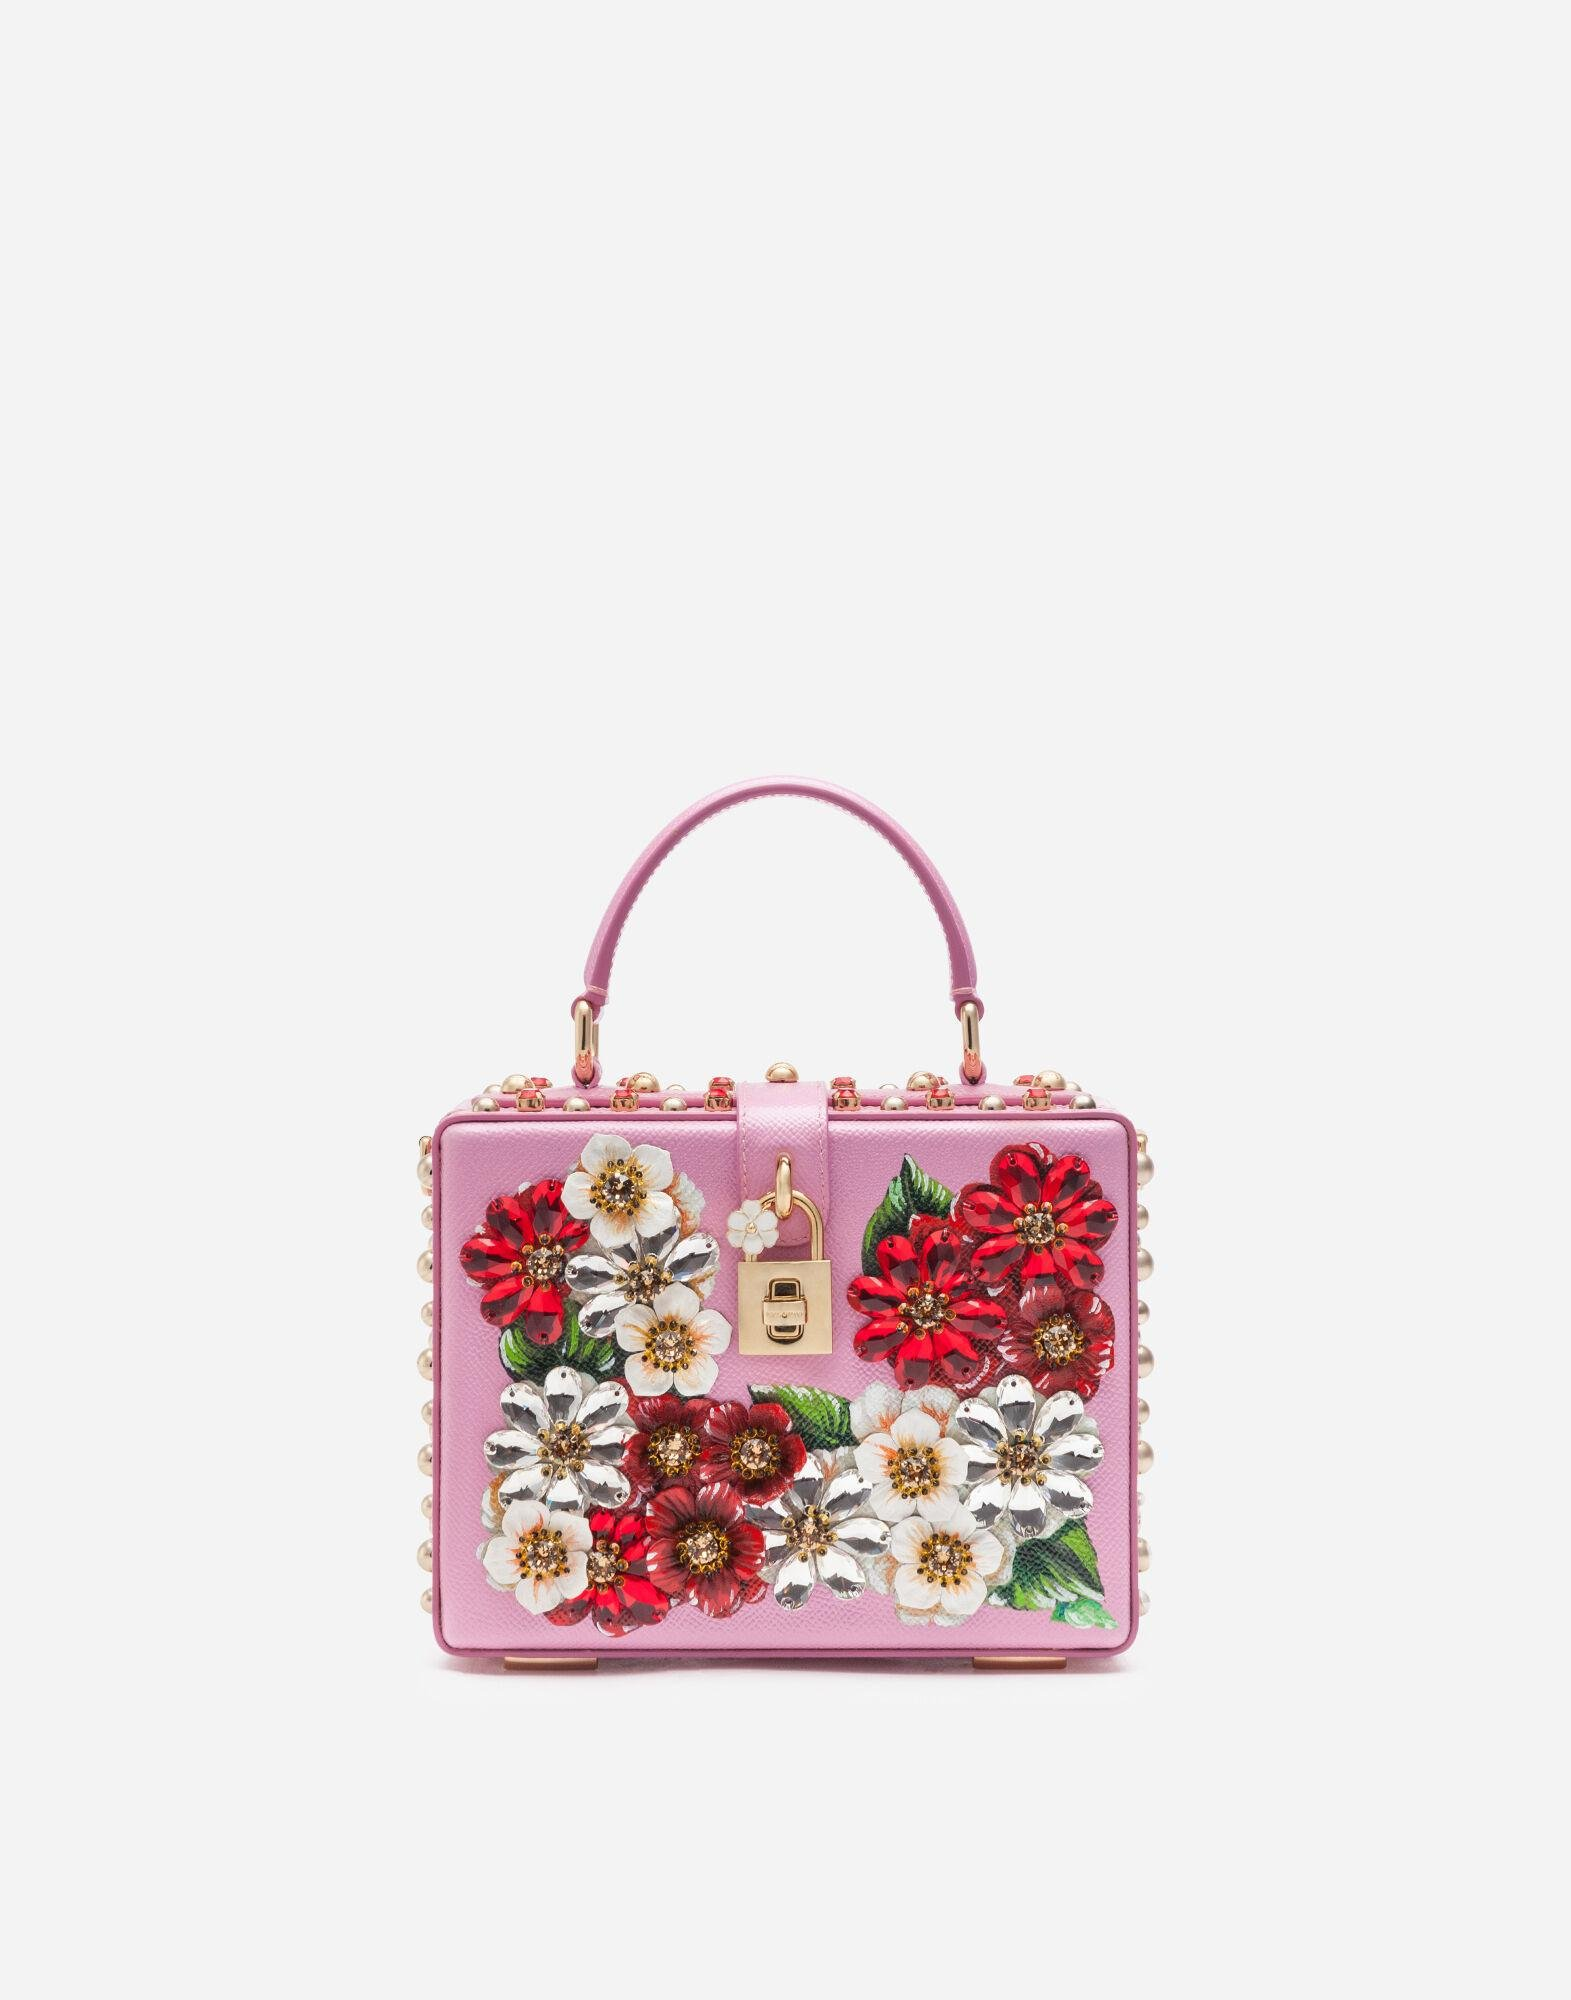 Dolce Box bag in dauphine calfskin with geranium print and embroidery